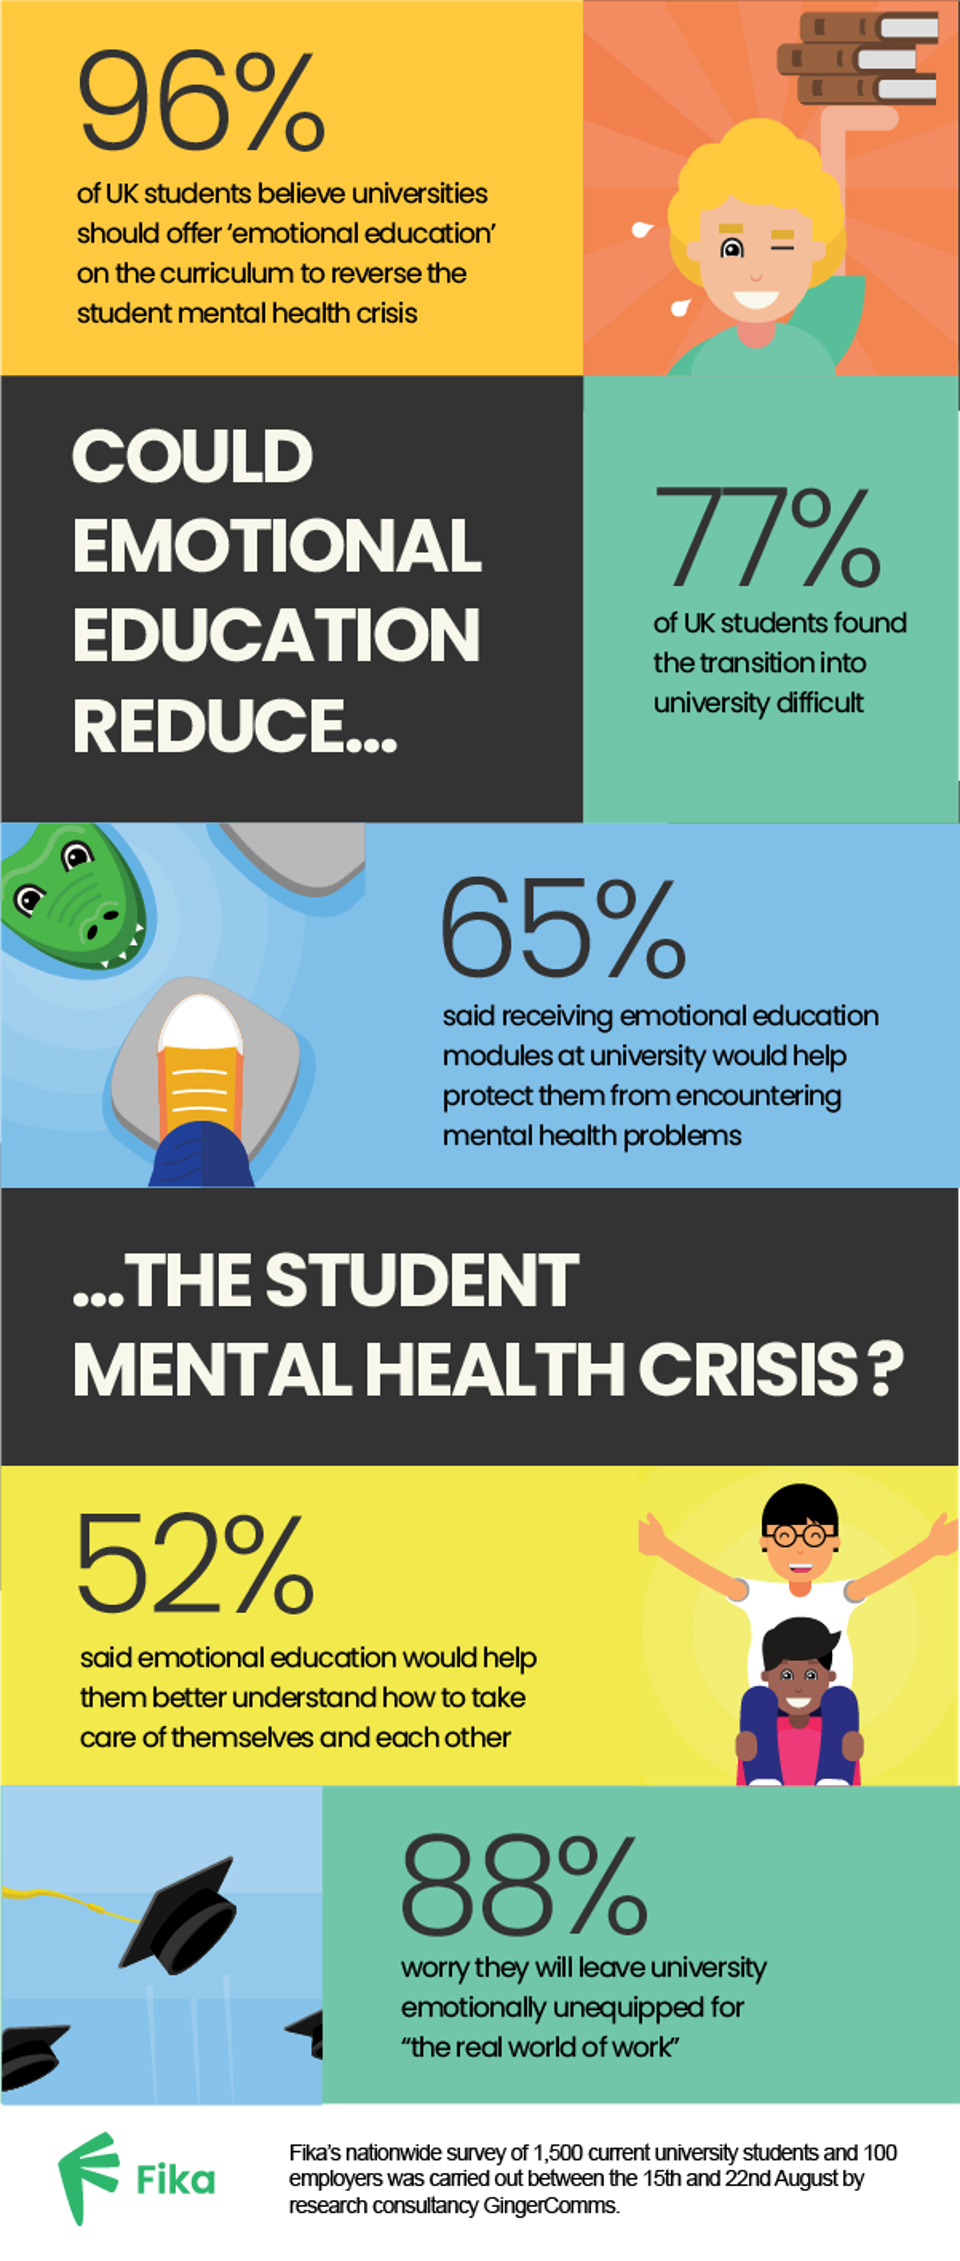 96% of UK students want emotional education on the curriculum.